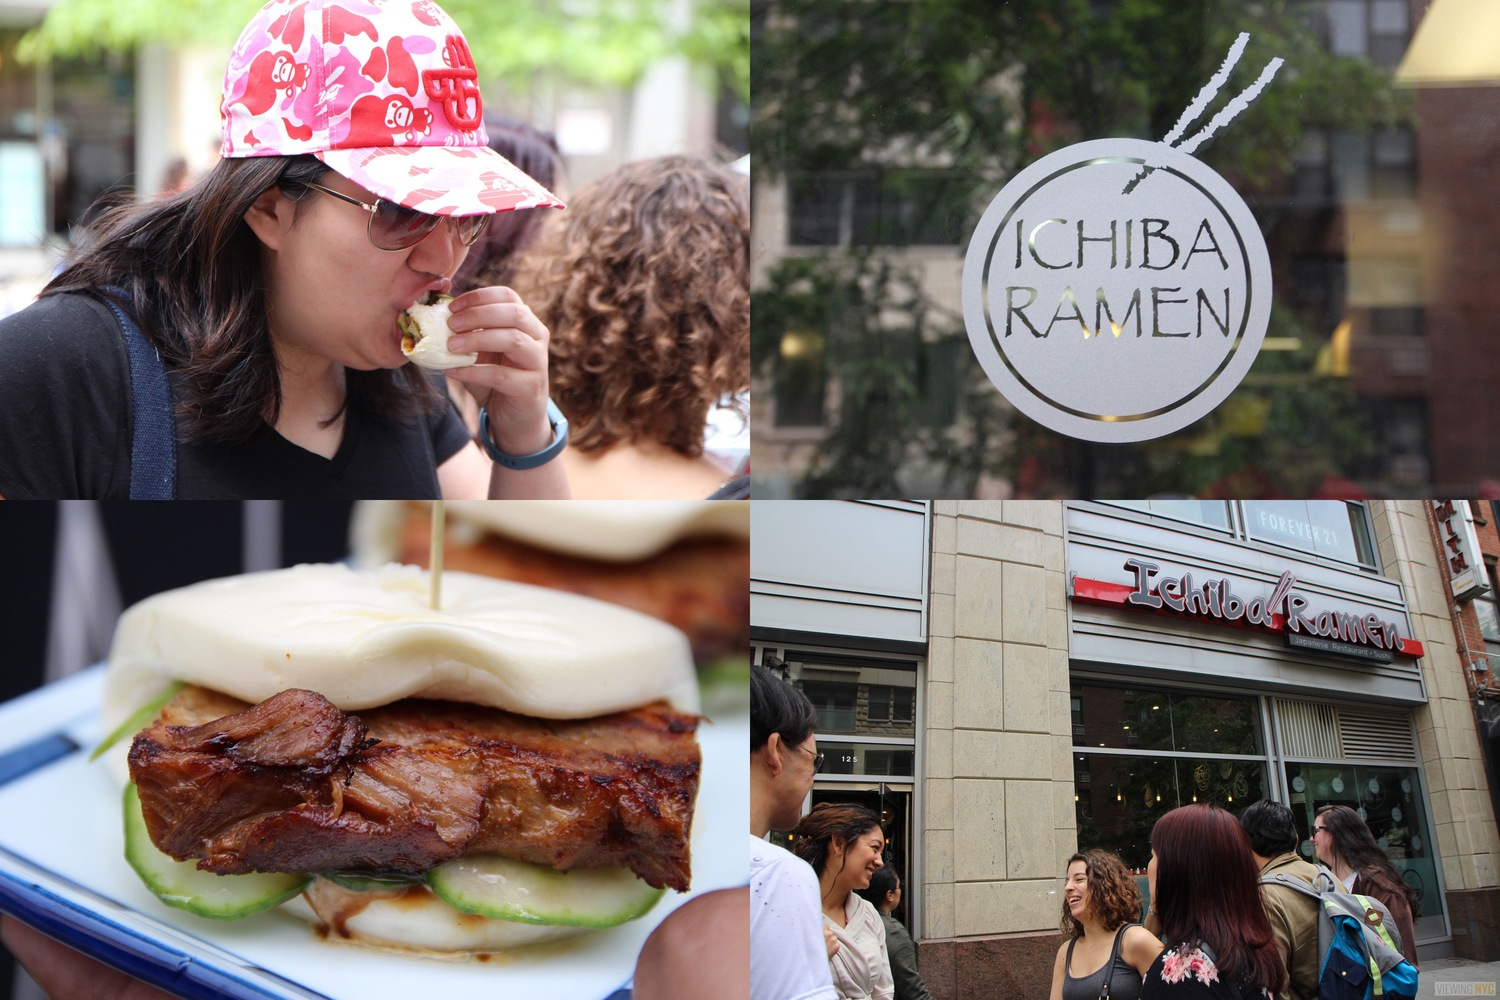 Ichiba Ramen | 2016 Viewing NYC East Village Pork Bun Crawl